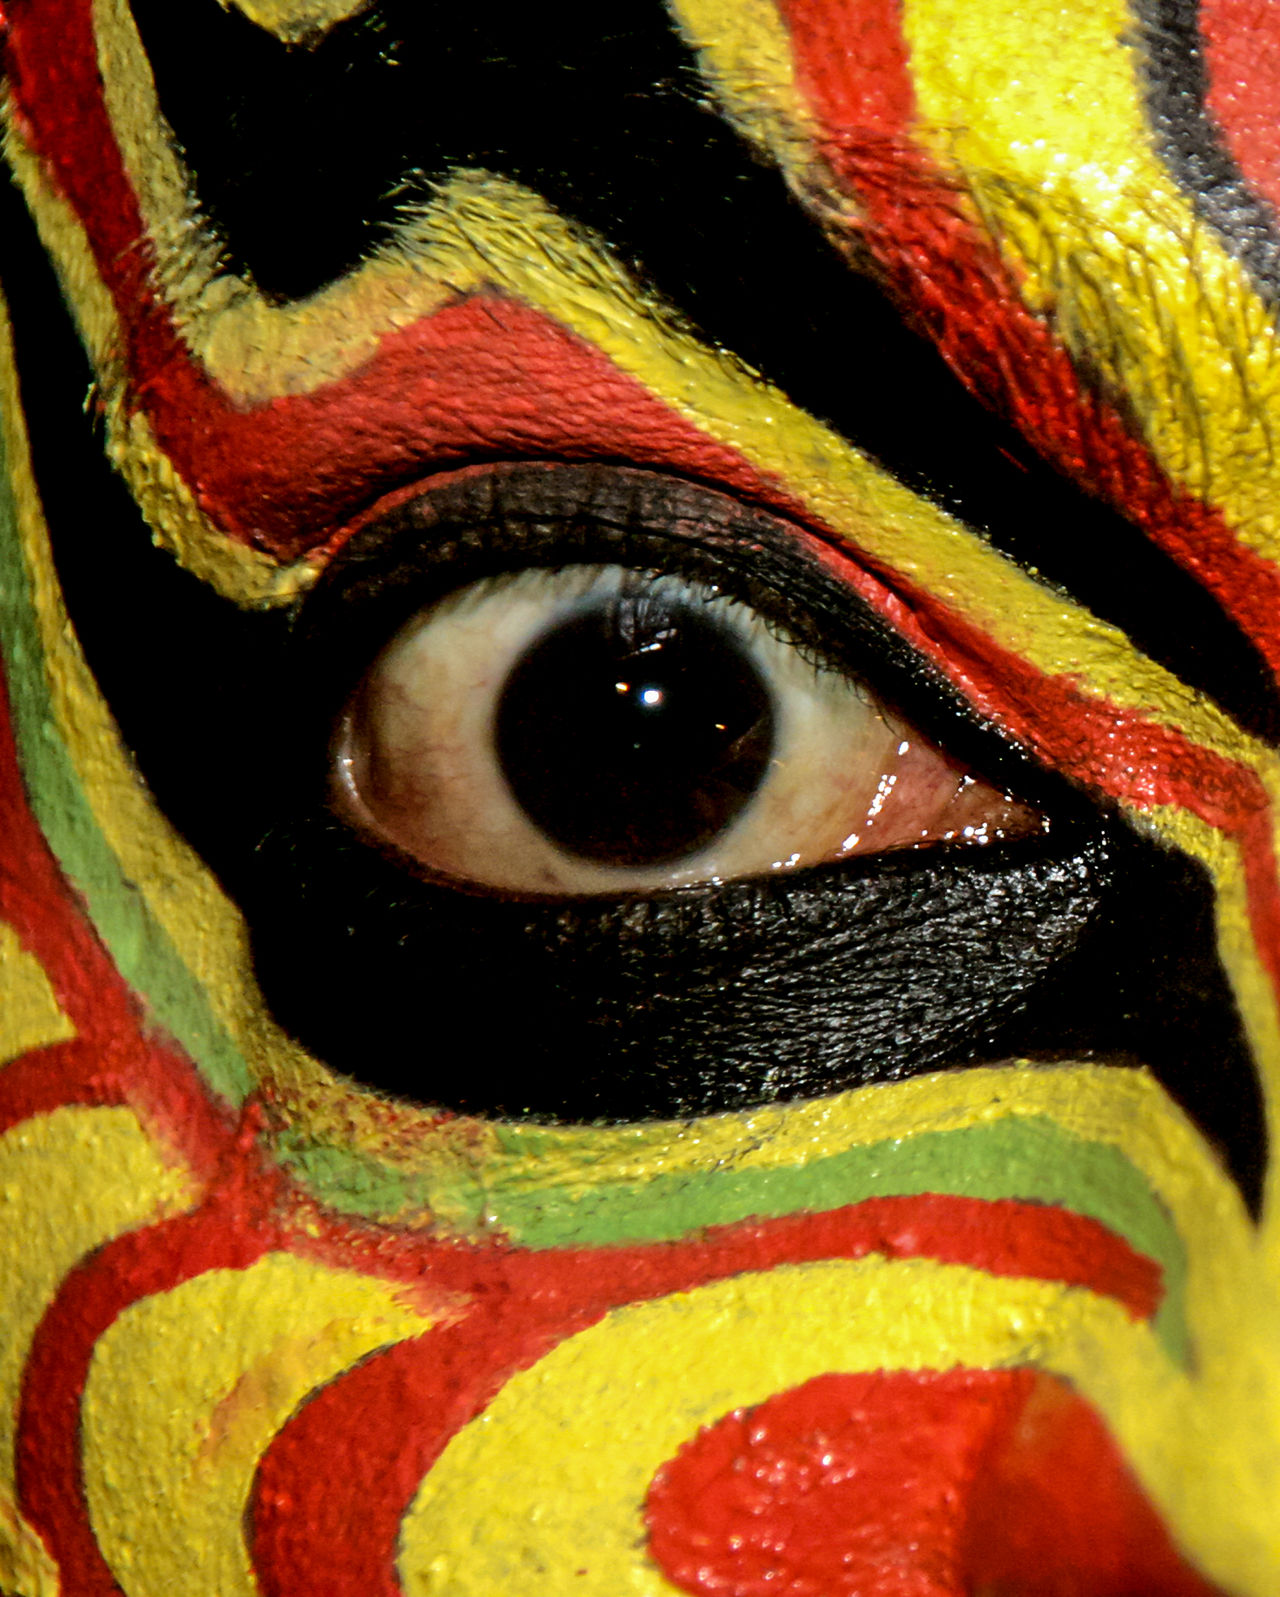 Looking At Camera Multi Colored Yellow Human Eye Close-up Face Paint Portrait Cultures Adult Traditional India Abstract Face Dance Makeup Kathakali Art Artist Artistic Stage Performance Folk Vibrant Color Eye